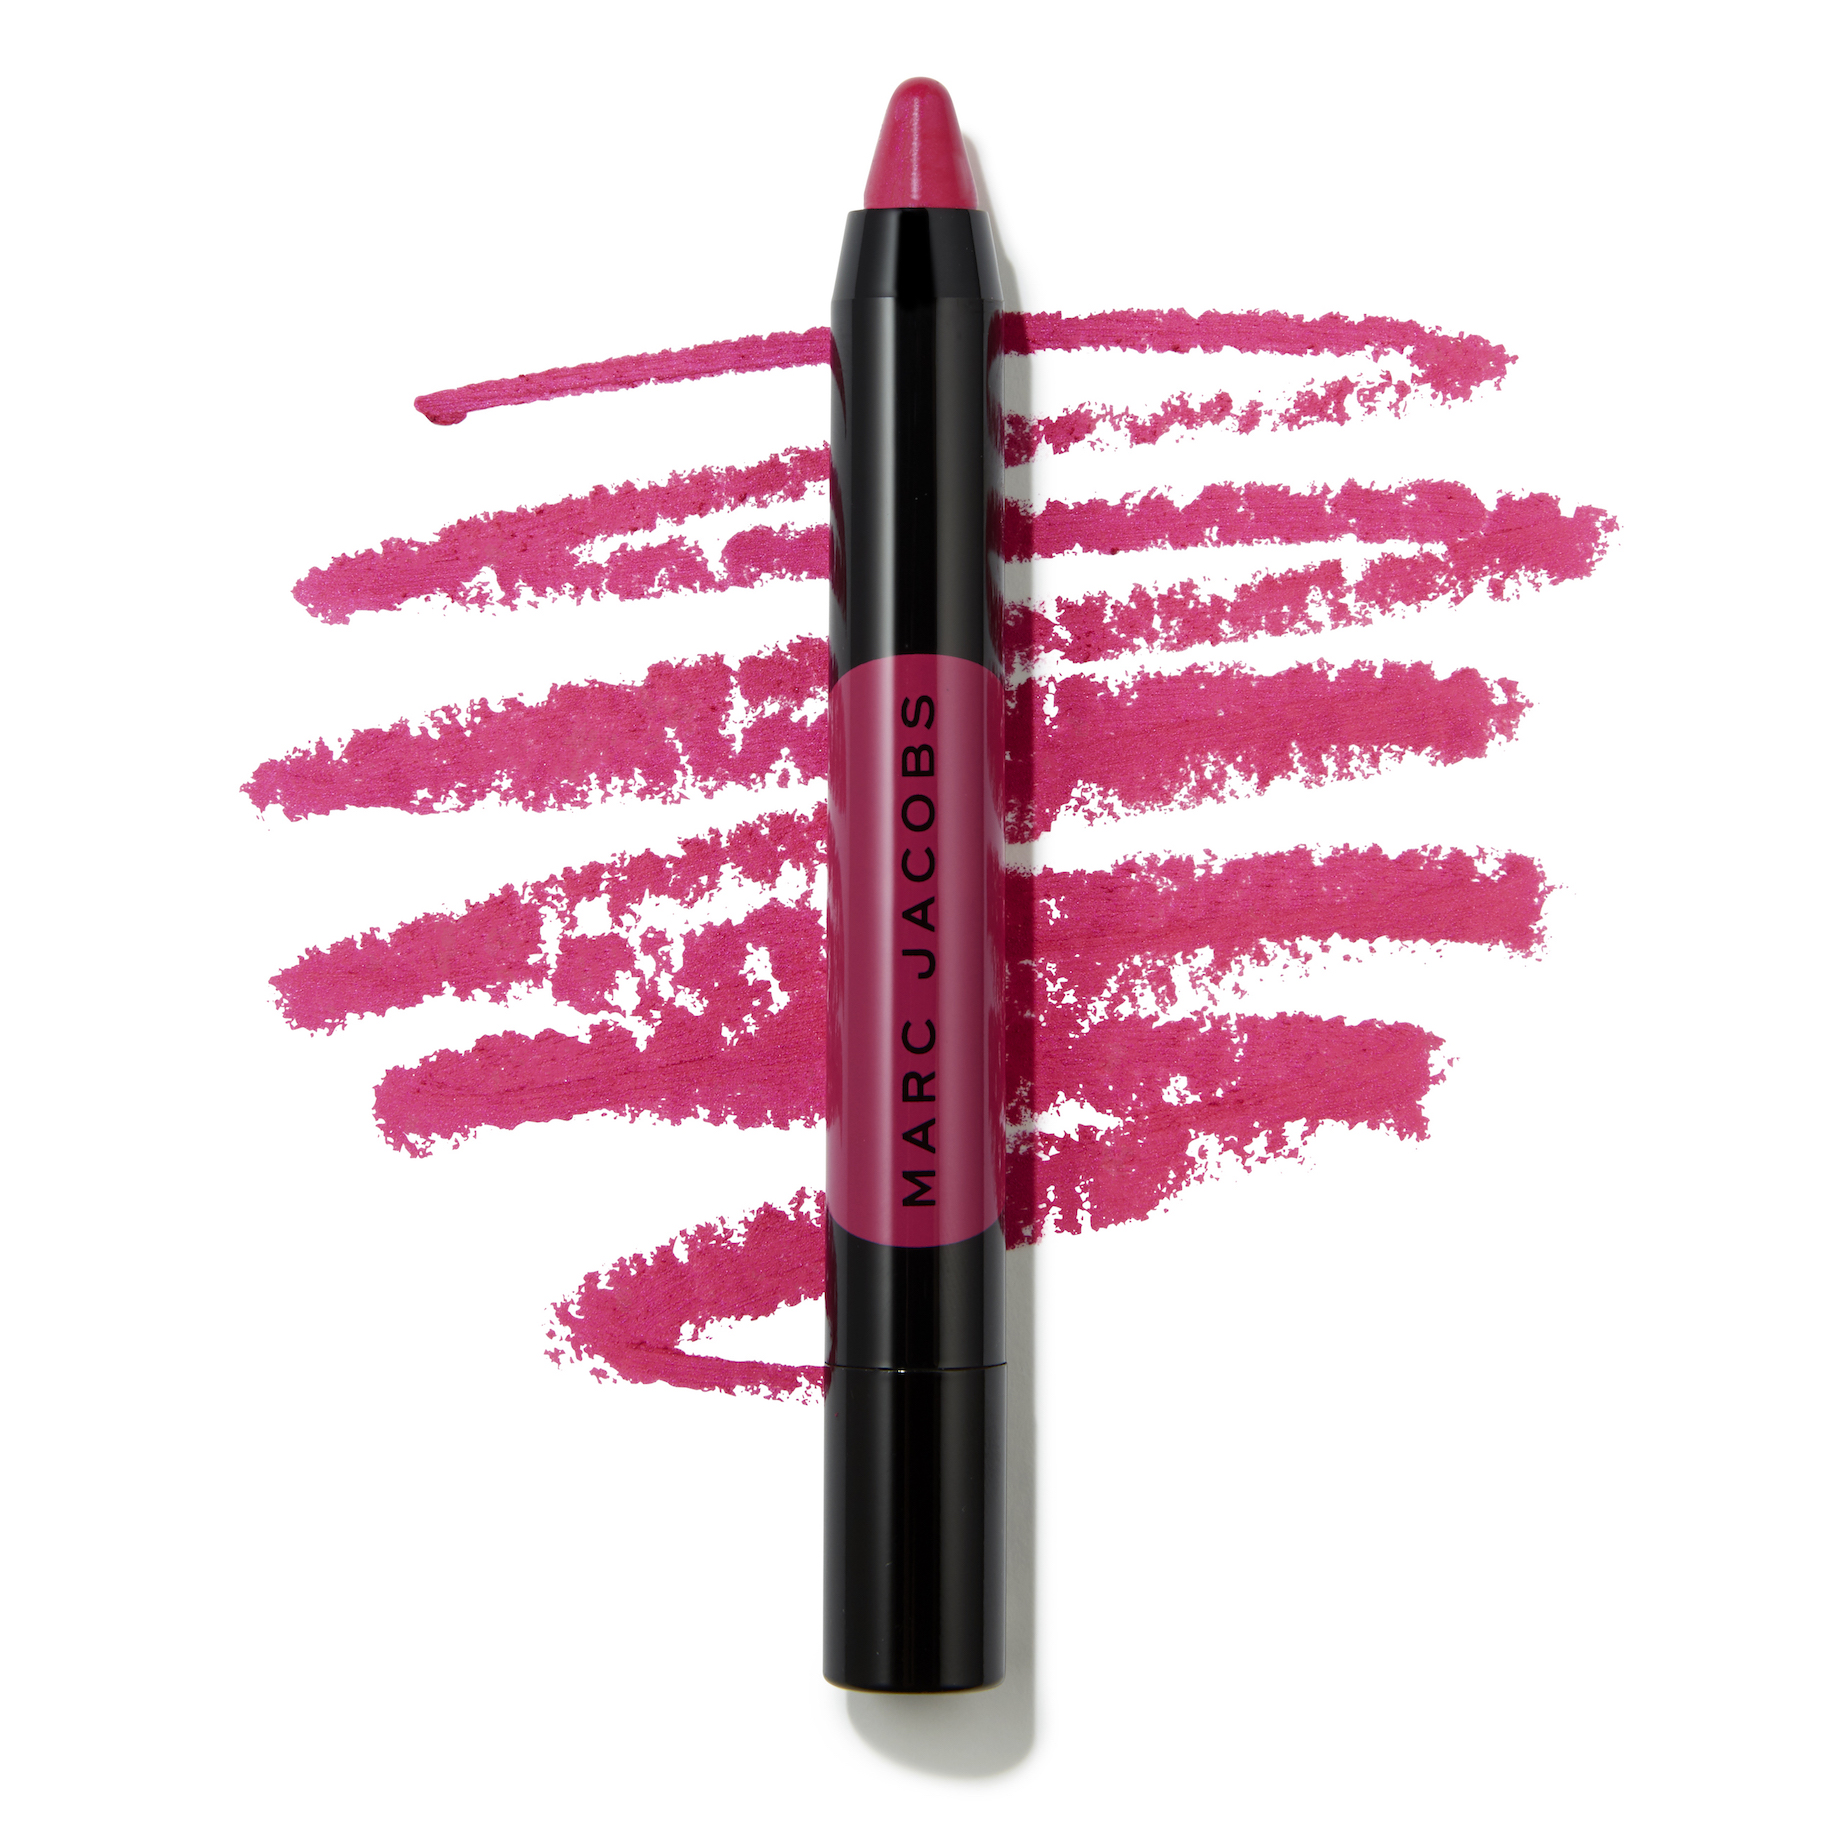 Marc Jacobs Beauty Le Marc Liquid Lip Crayon - Flaming Oh Swatch - AED 125